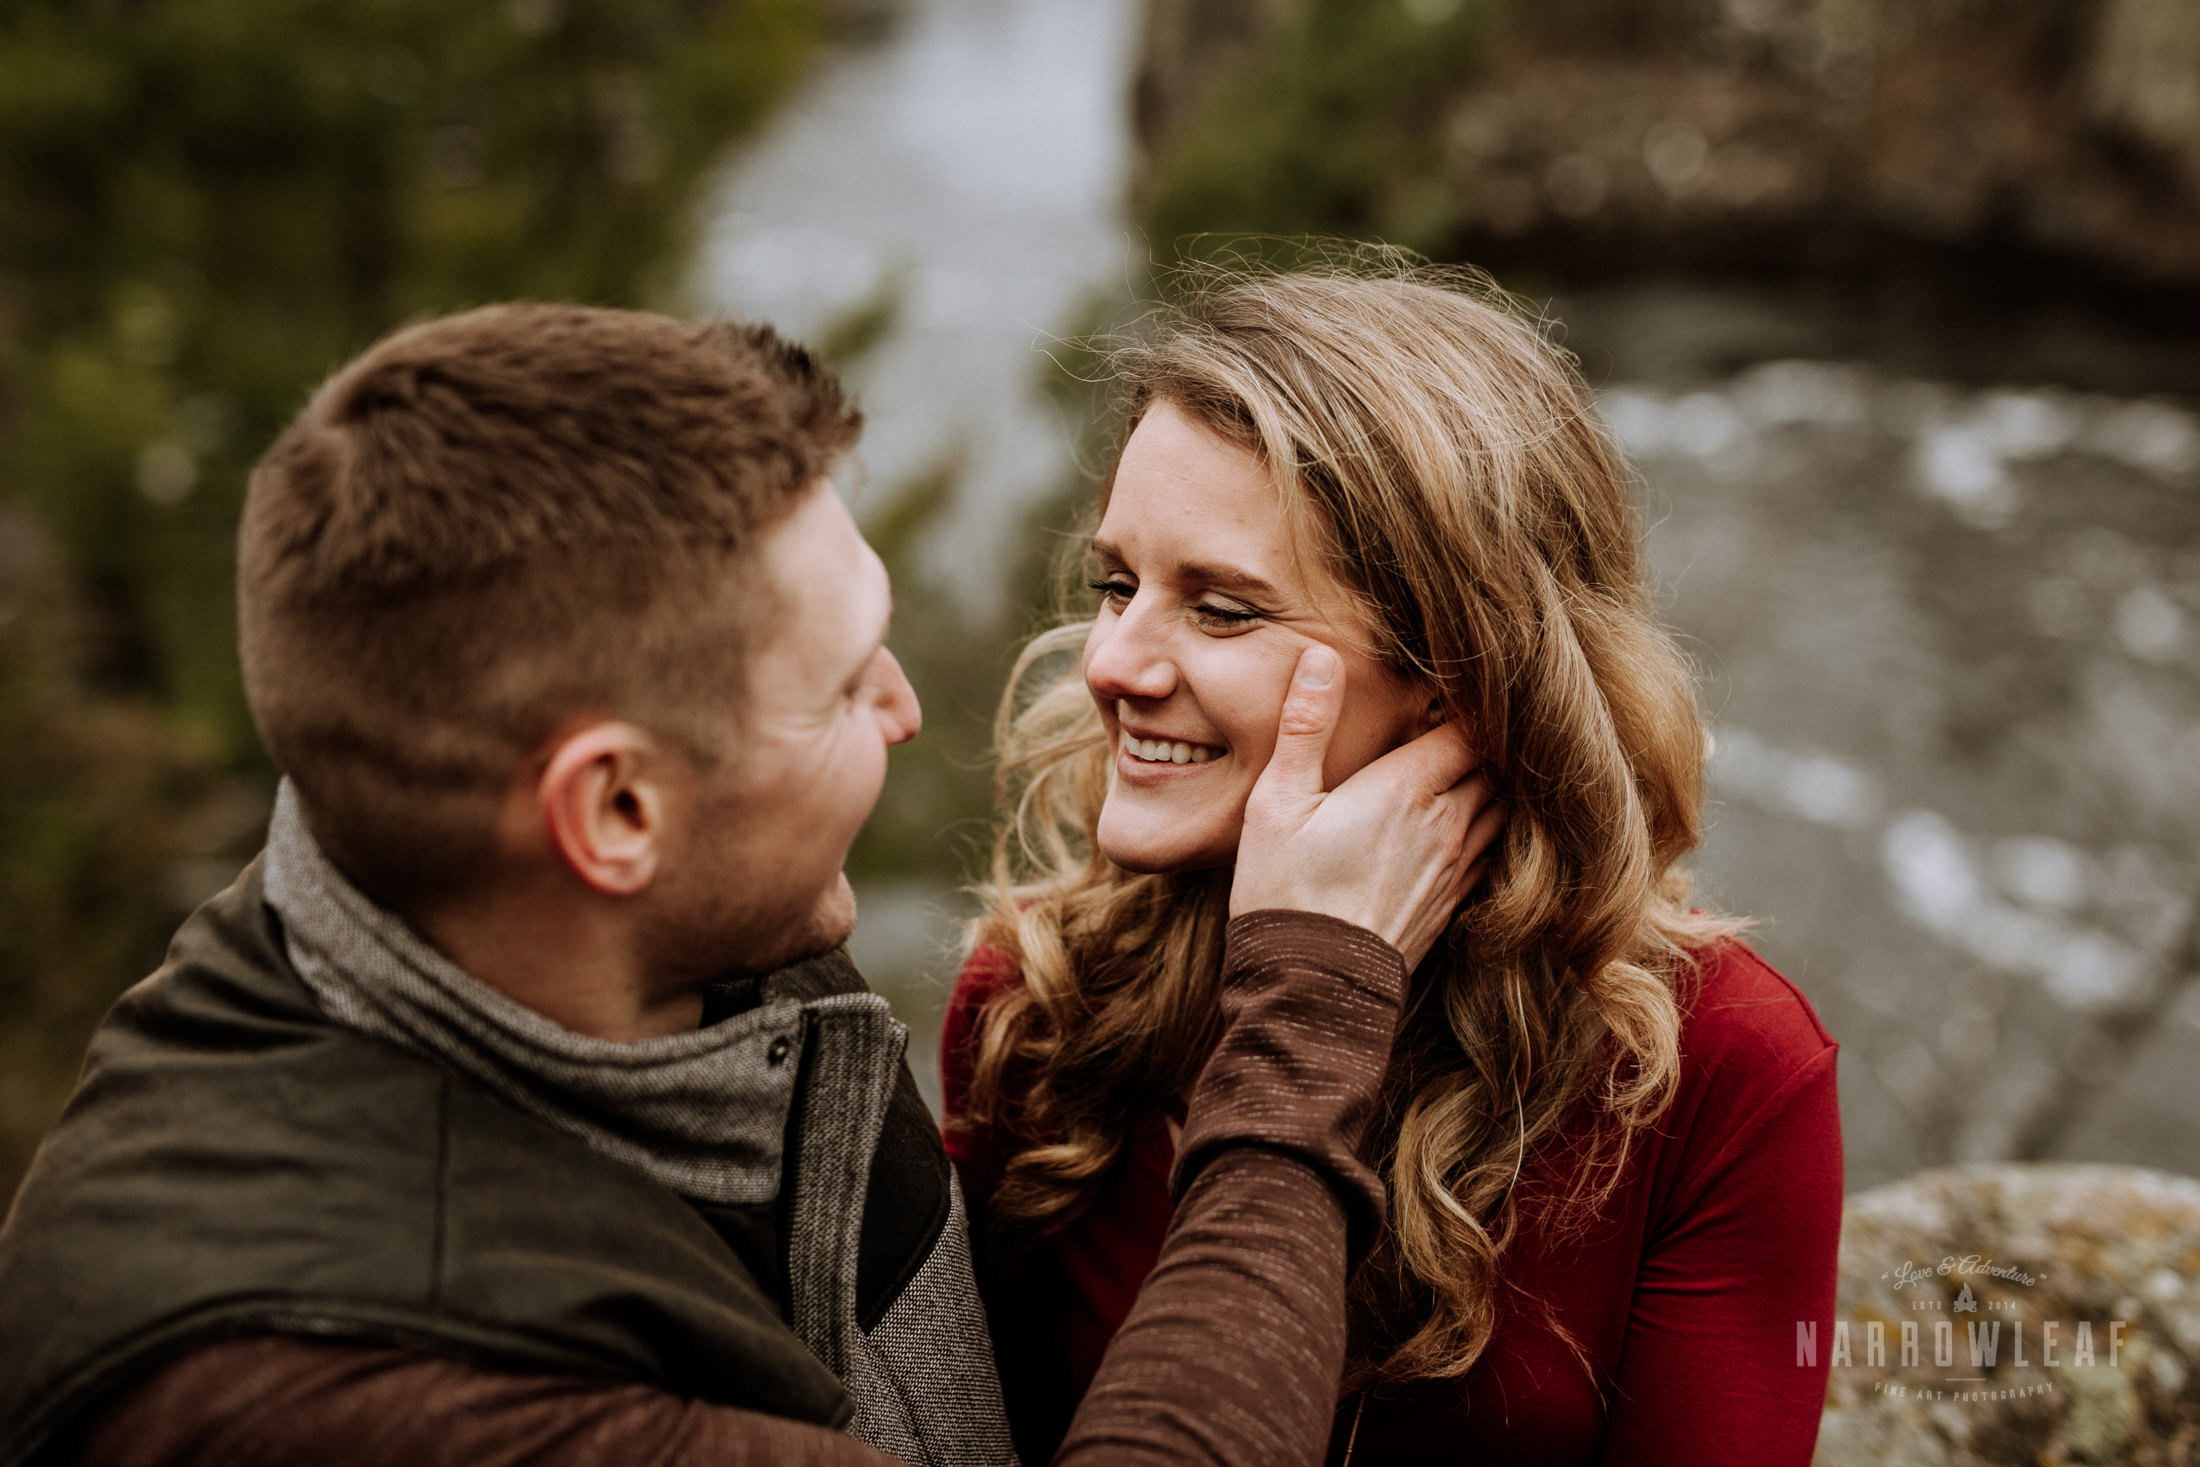 wisconsin-winter-adventure-engagement-interstate-park-bluffs-Narrowleaf_Love_and_Adventure_Photography-1736.jpg